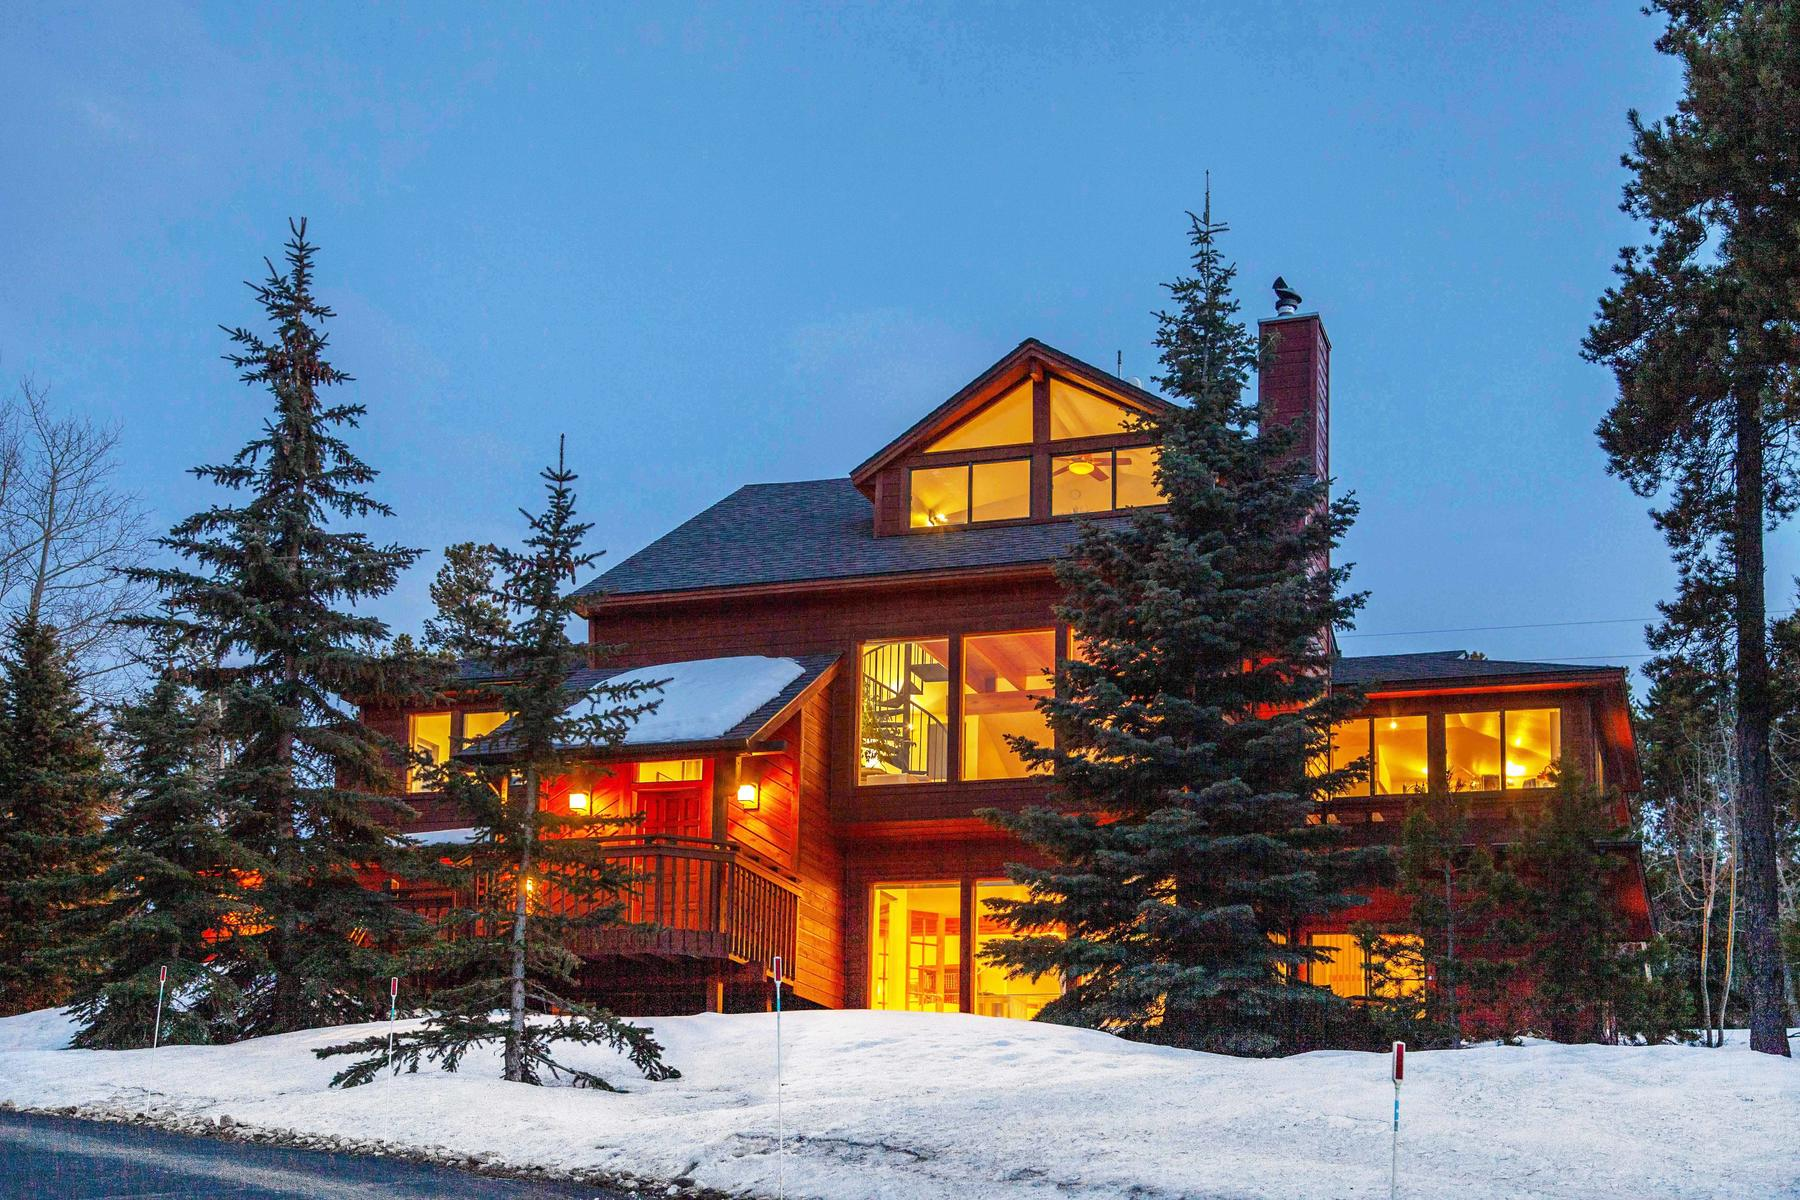 Single Family Homes for Sale at Thoughtfully designed: This is Tranquil Colorado Mountain Living at its Finest! 1055 Indian Peak Road Golden, Colorado 80403 United States